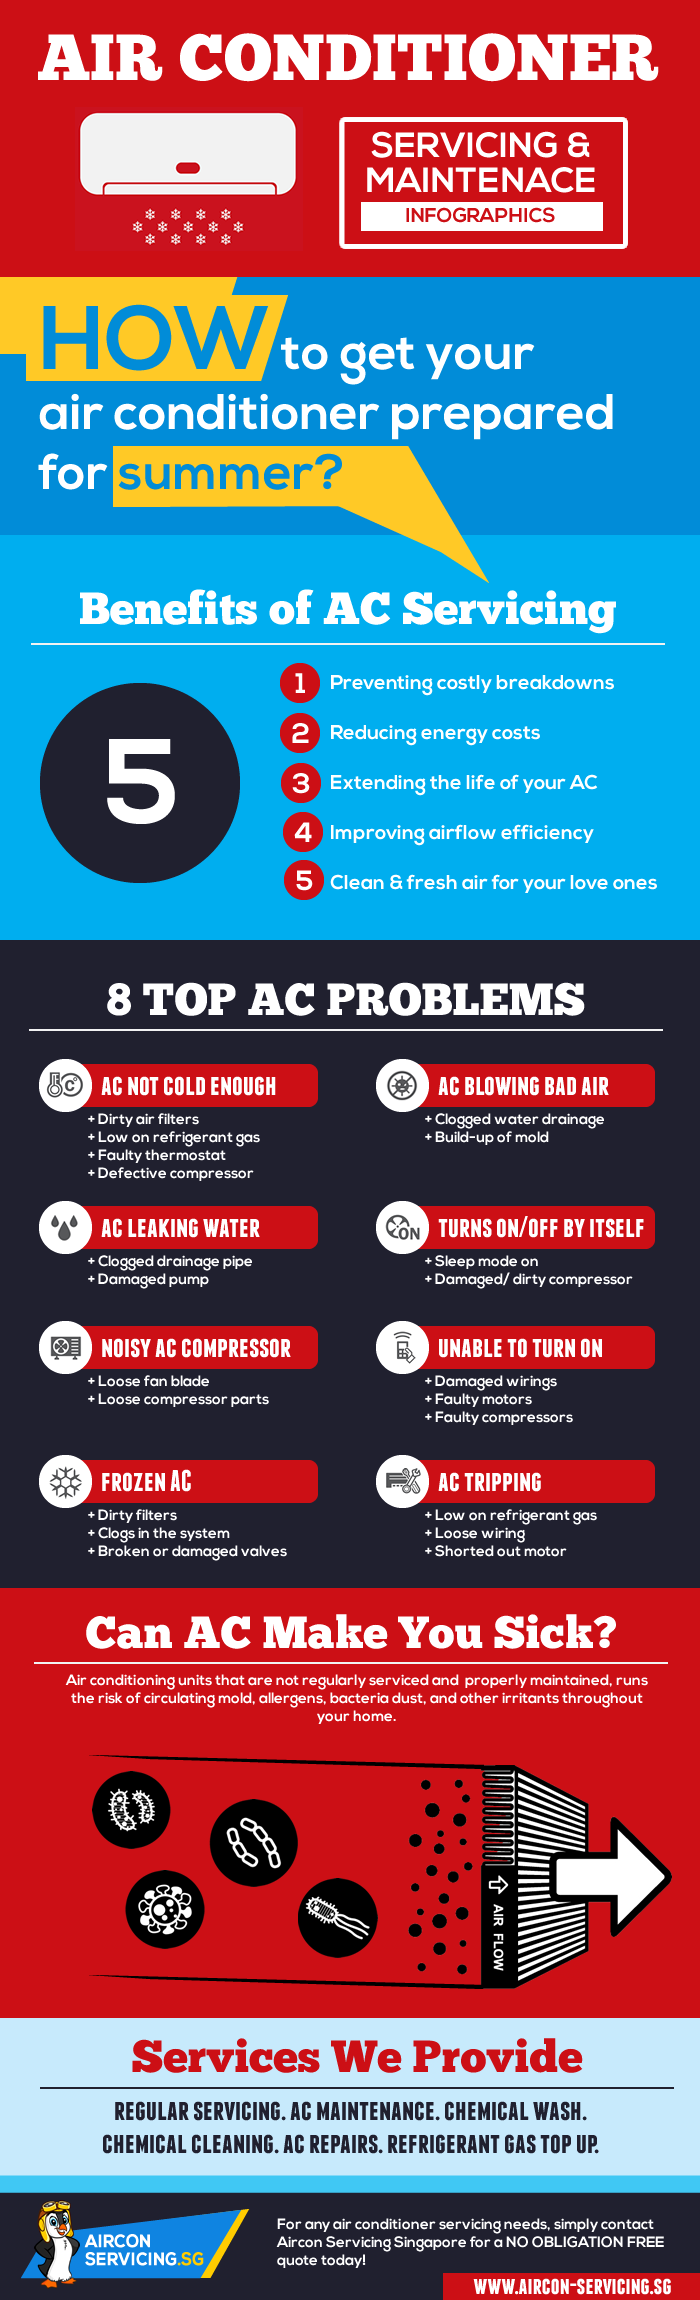 air-conditioner-servicing-maintenance-infographics-101